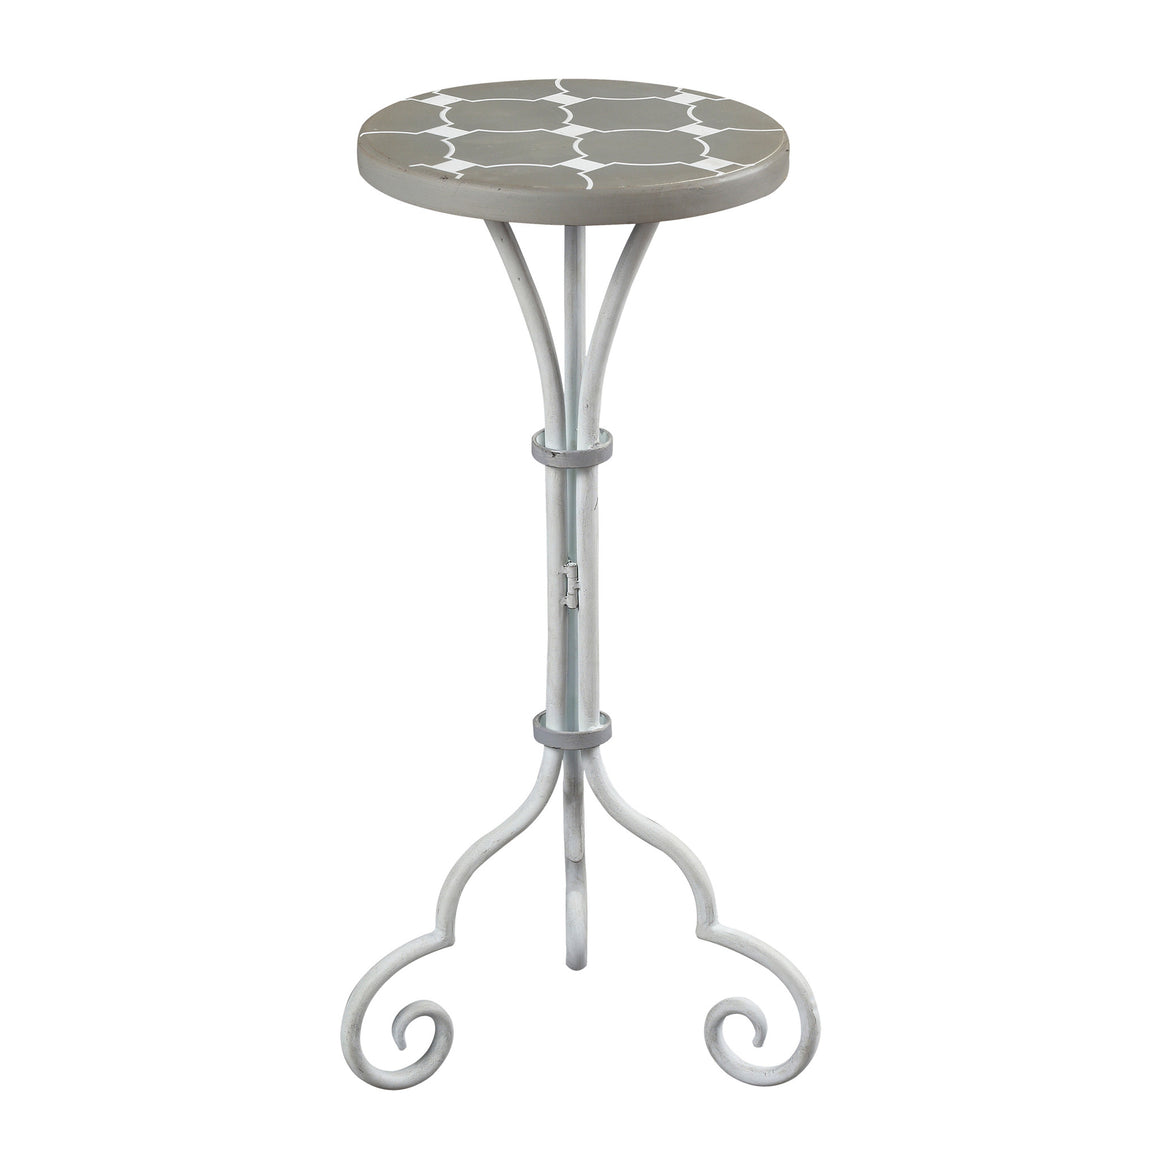 Ayer-Small Plant Stand In Grey / White Painted Finish by Sterling